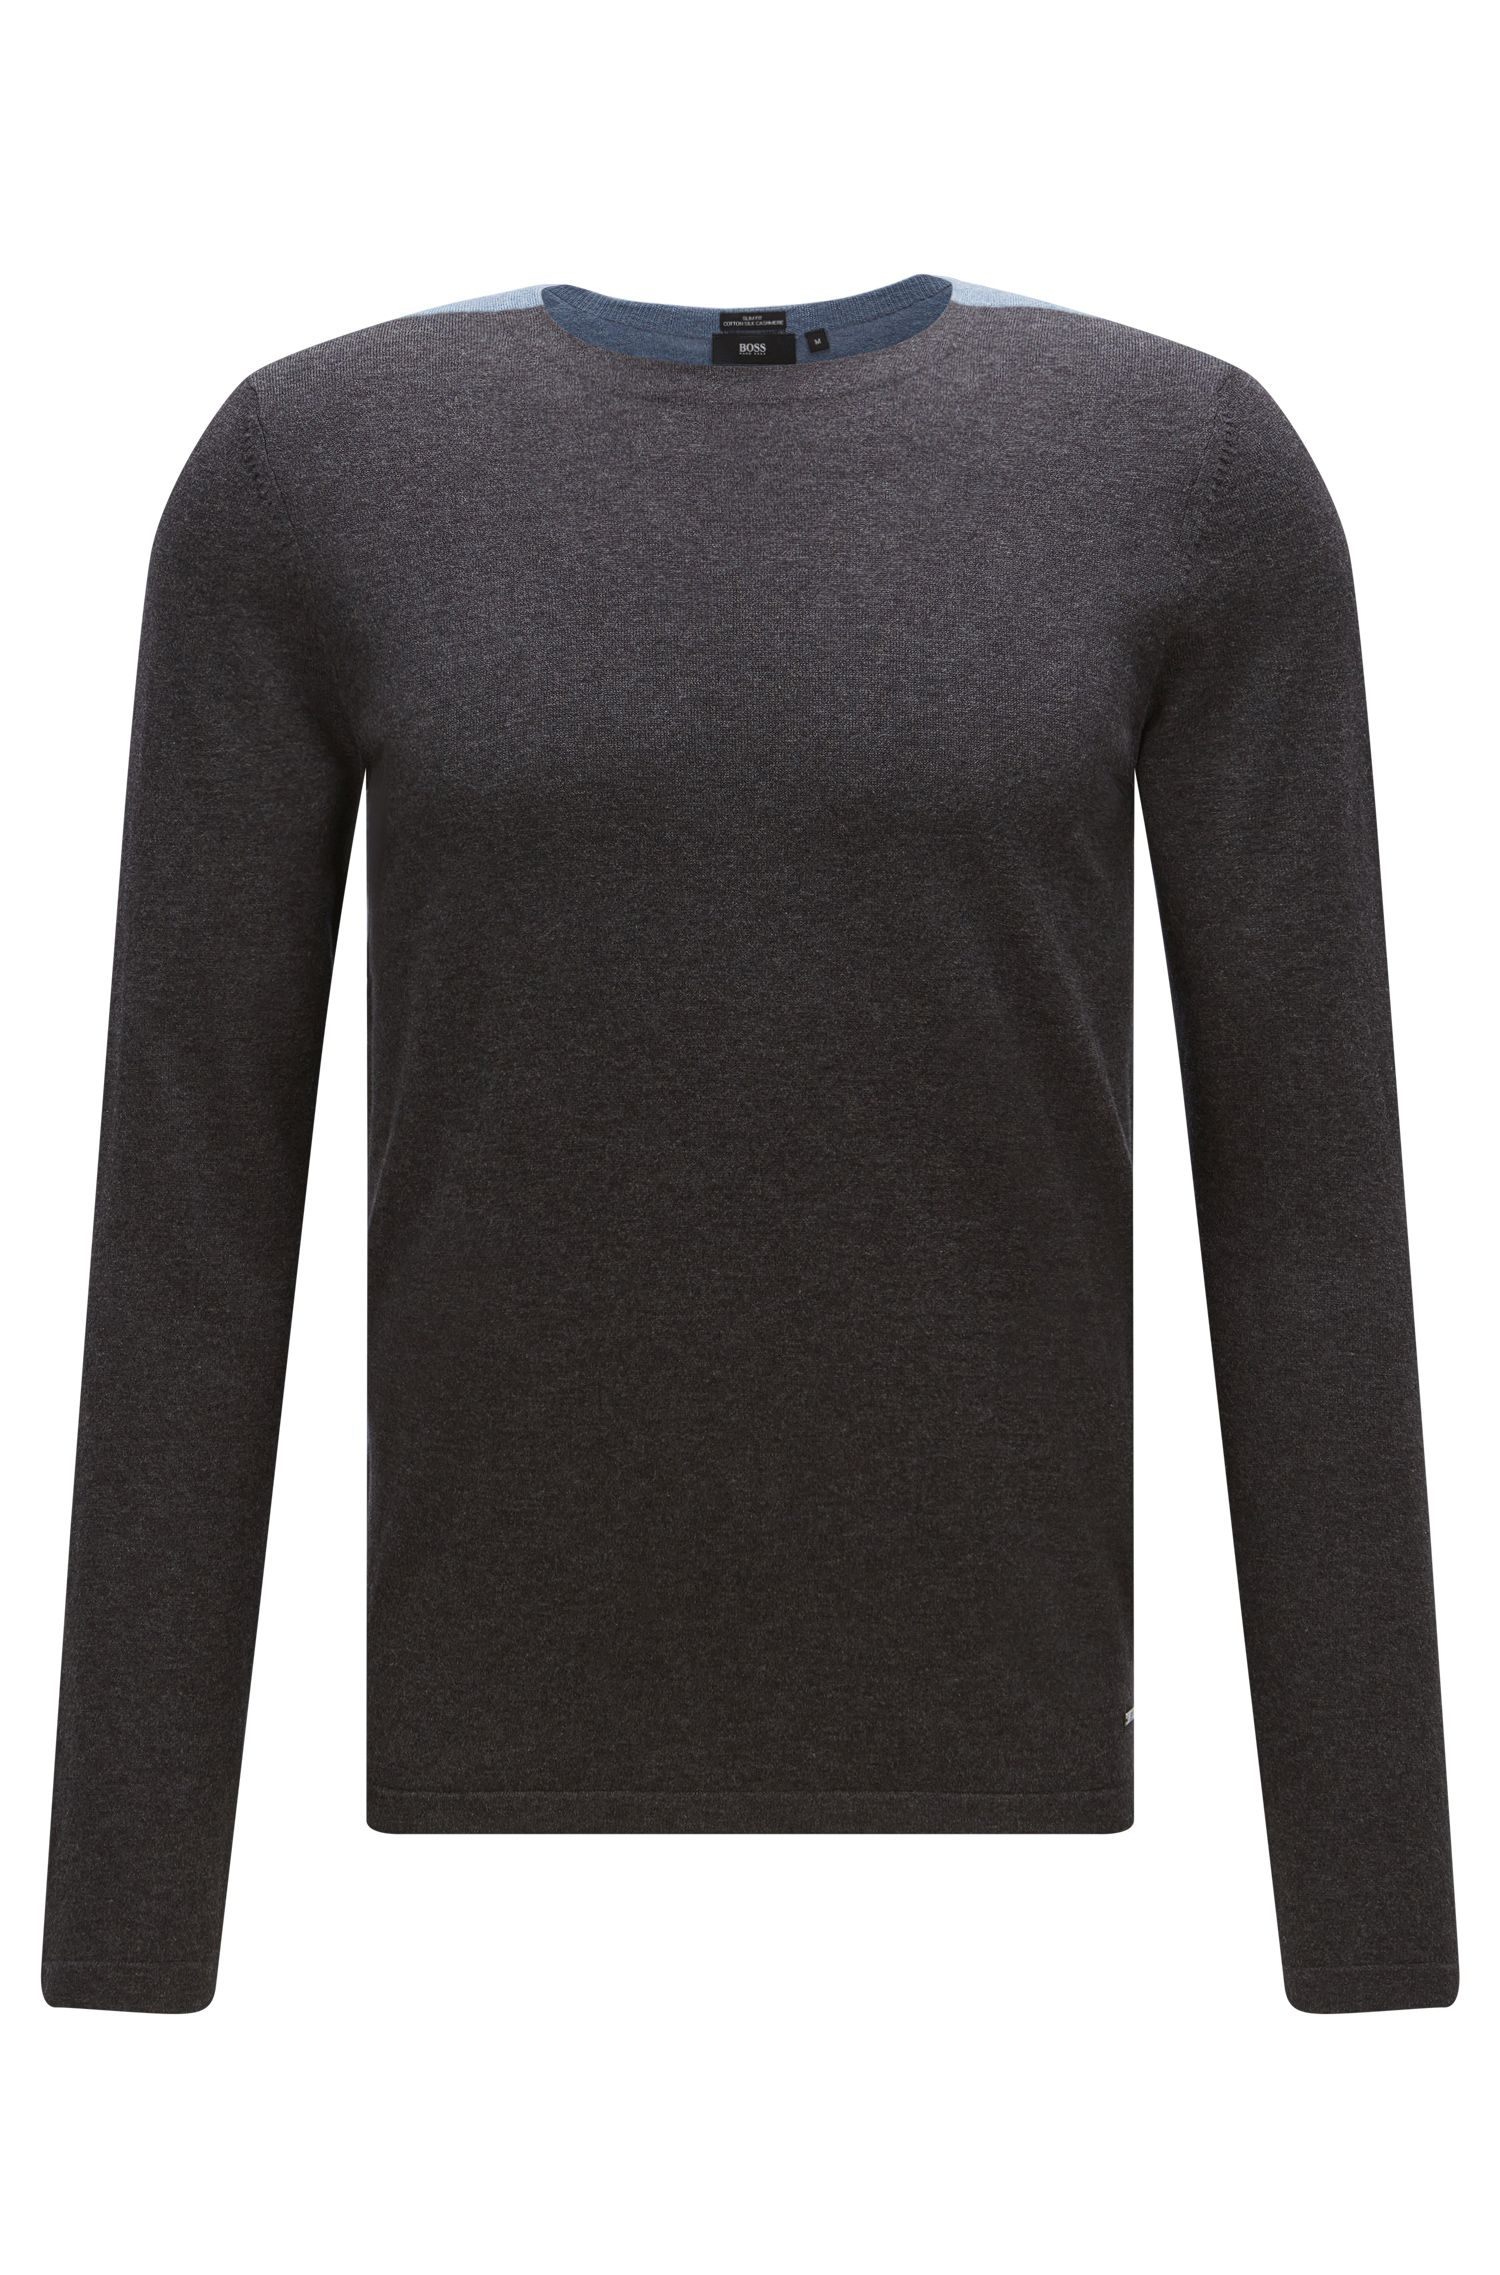 'Onzo' | Cotton Silk Cashmere Colorblocked Sweater